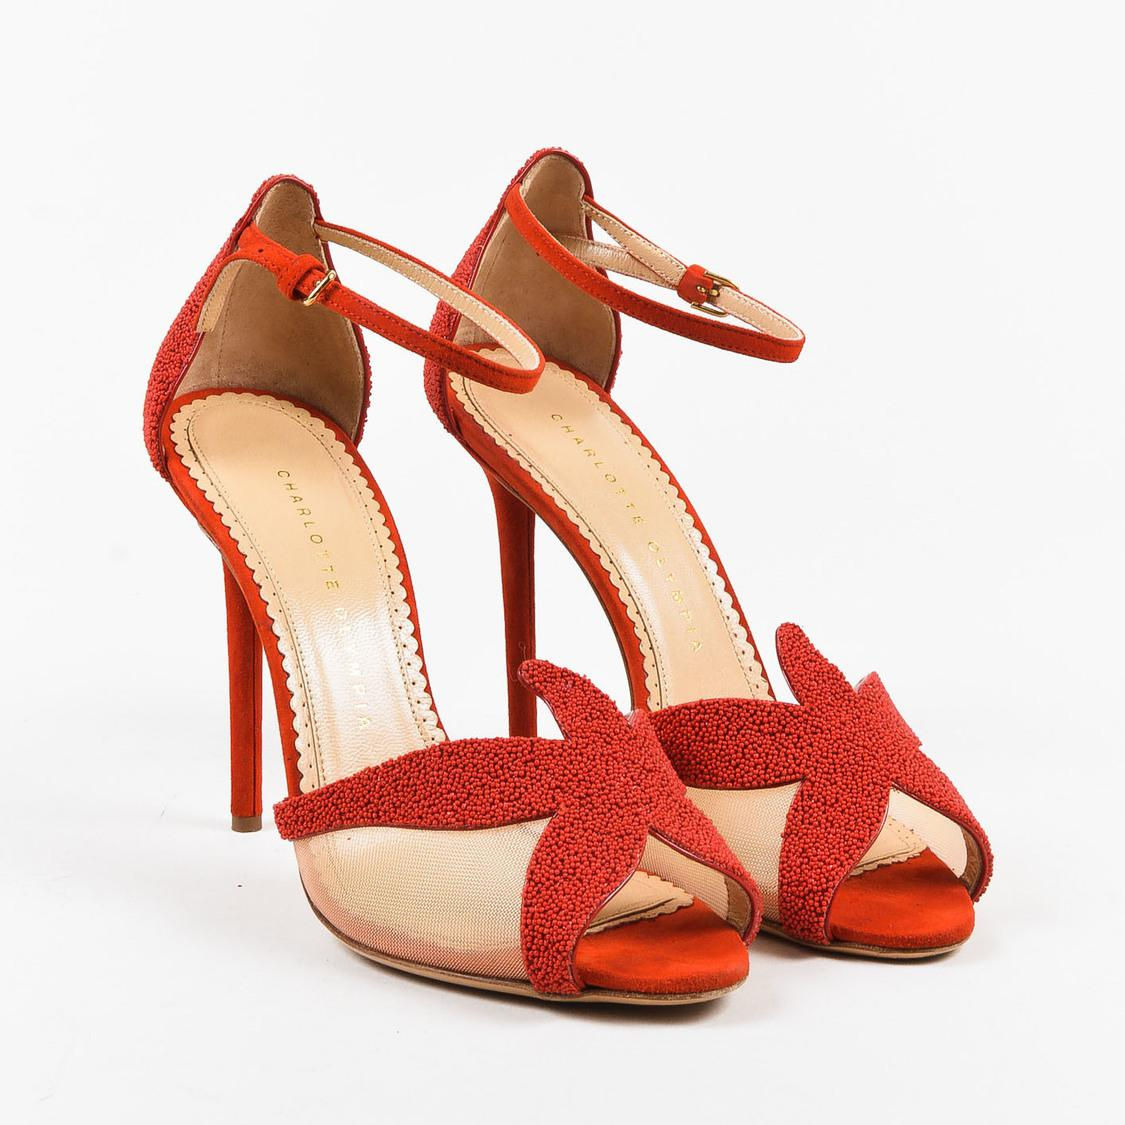 c627e7721 Lyst - Charlotte Olympia Red Embellished Suede